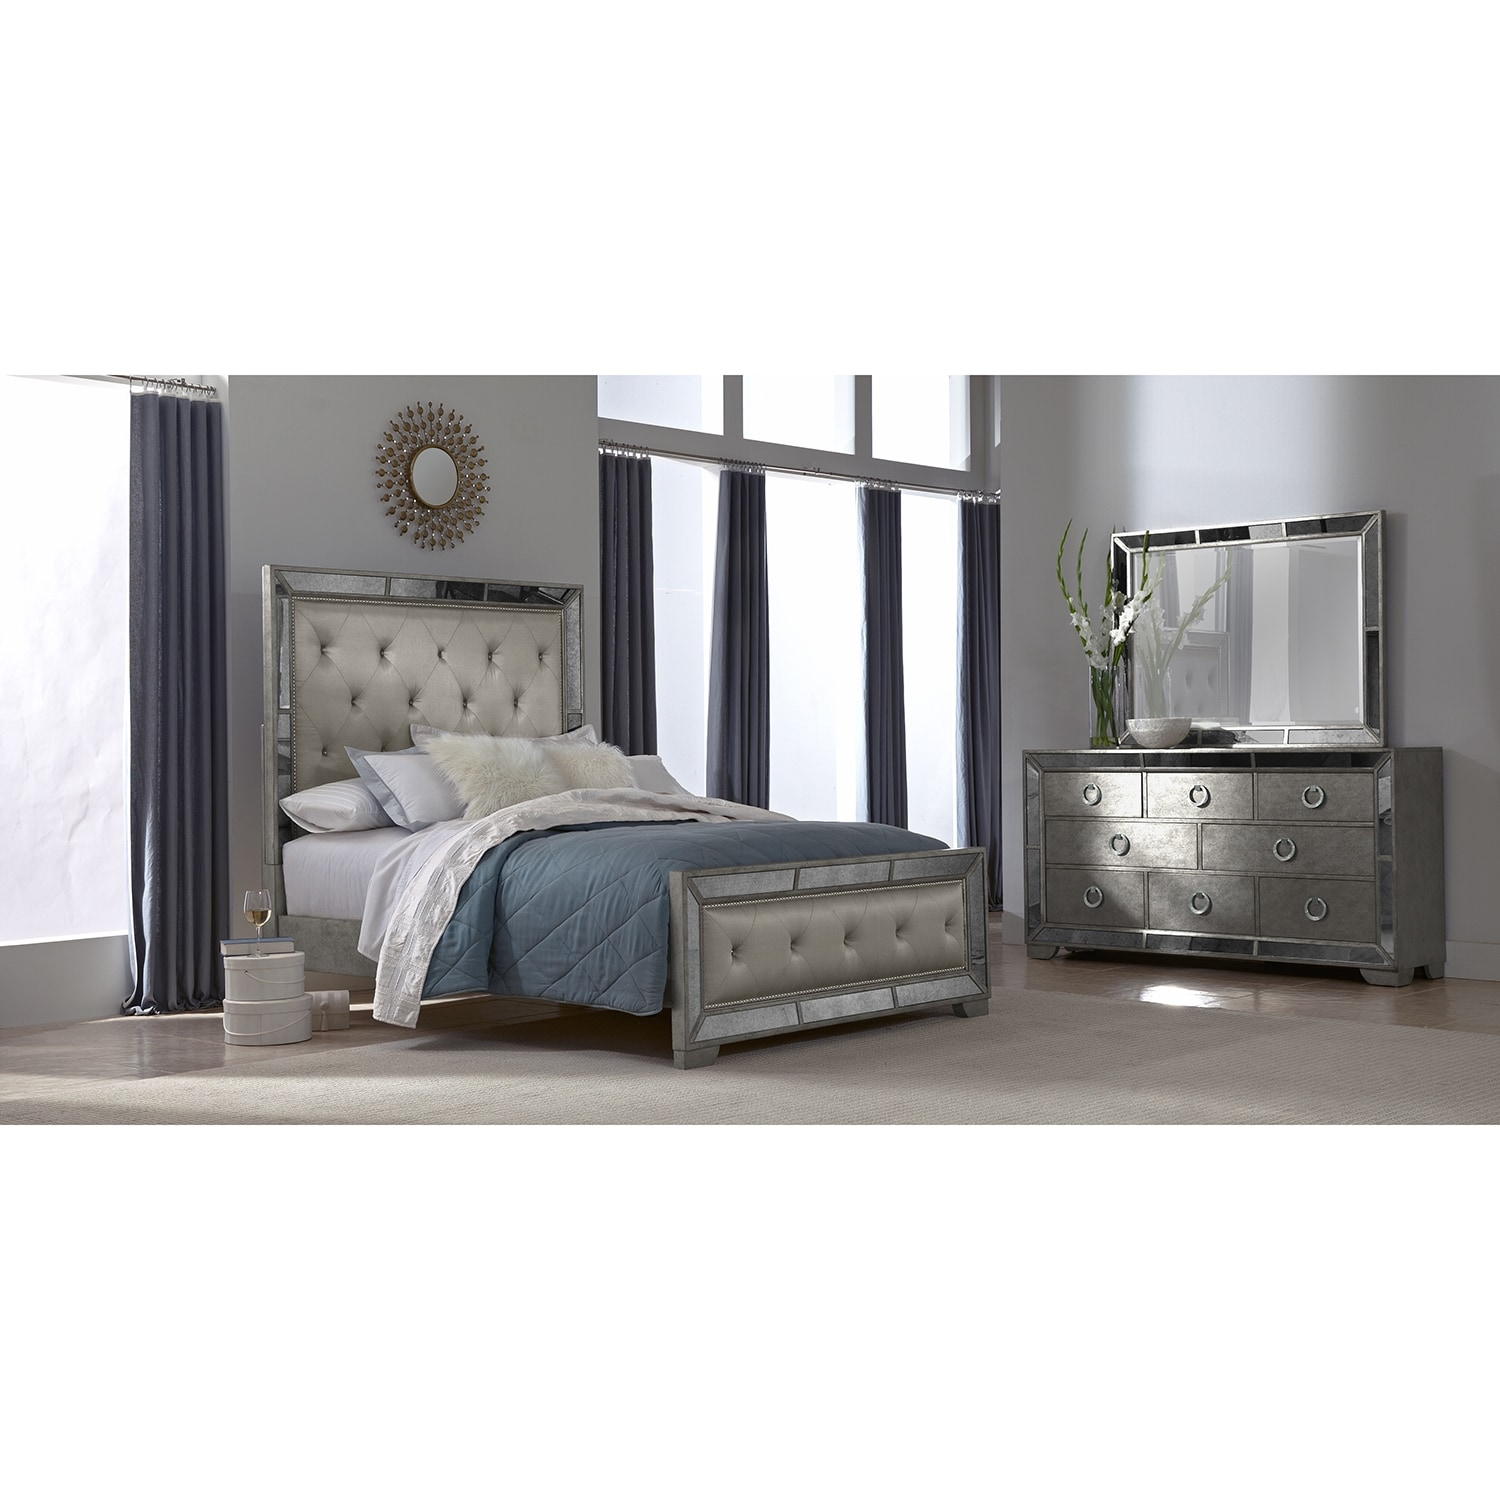 Angelina 5 pc queen bedroom american signature furniture for Furniture collection